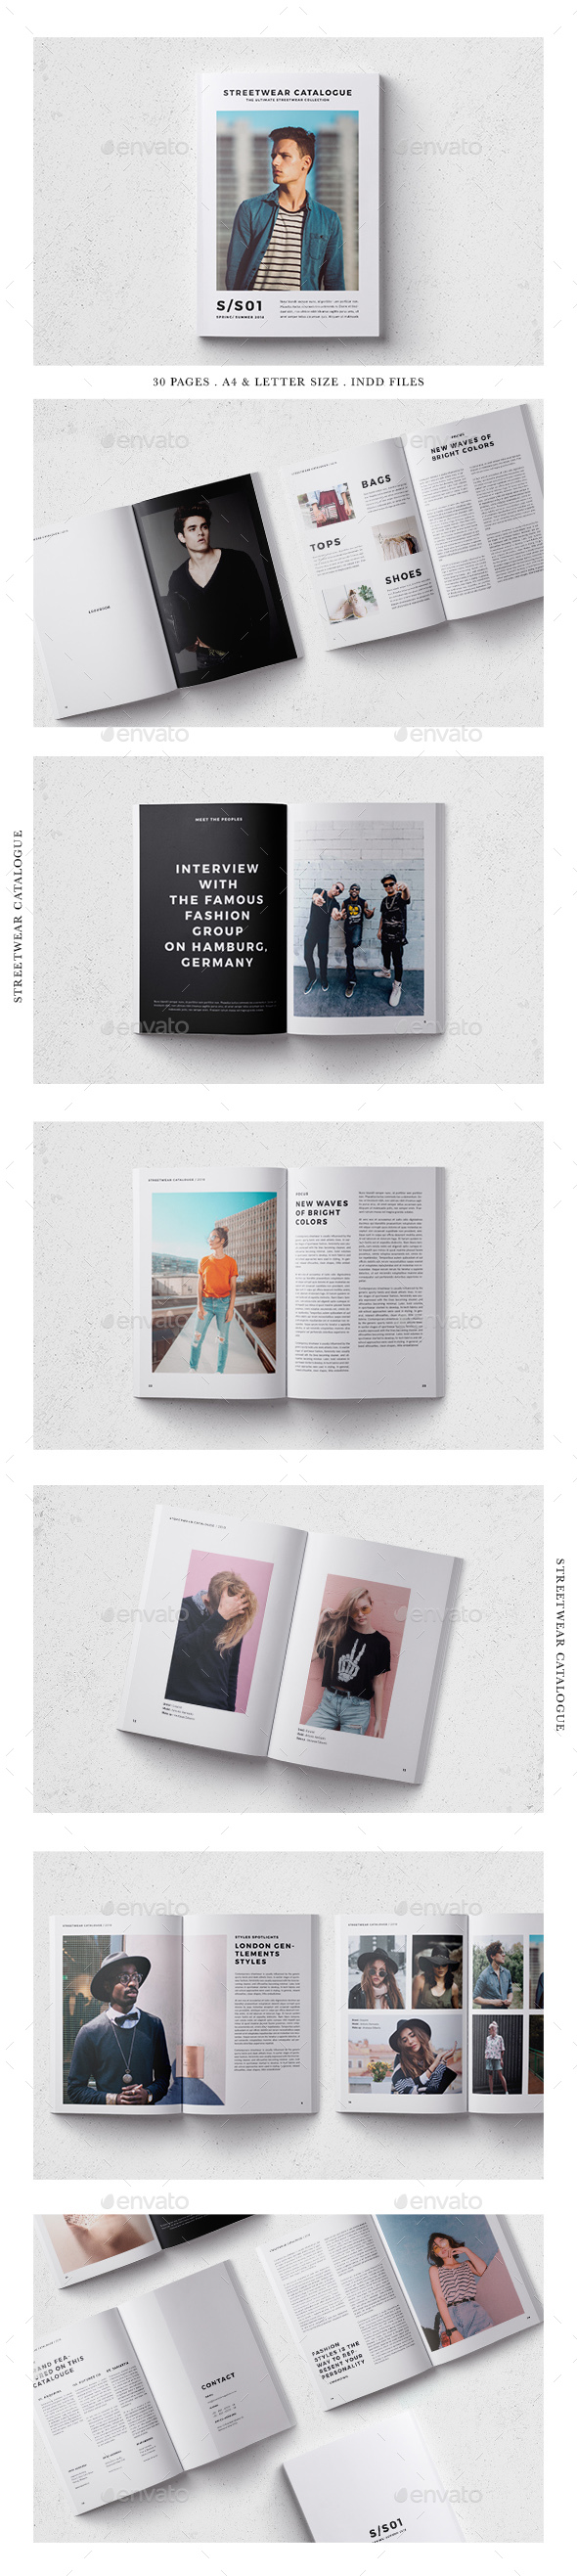 GraphicRiver Minimalist Fashion Lookbook 21067844